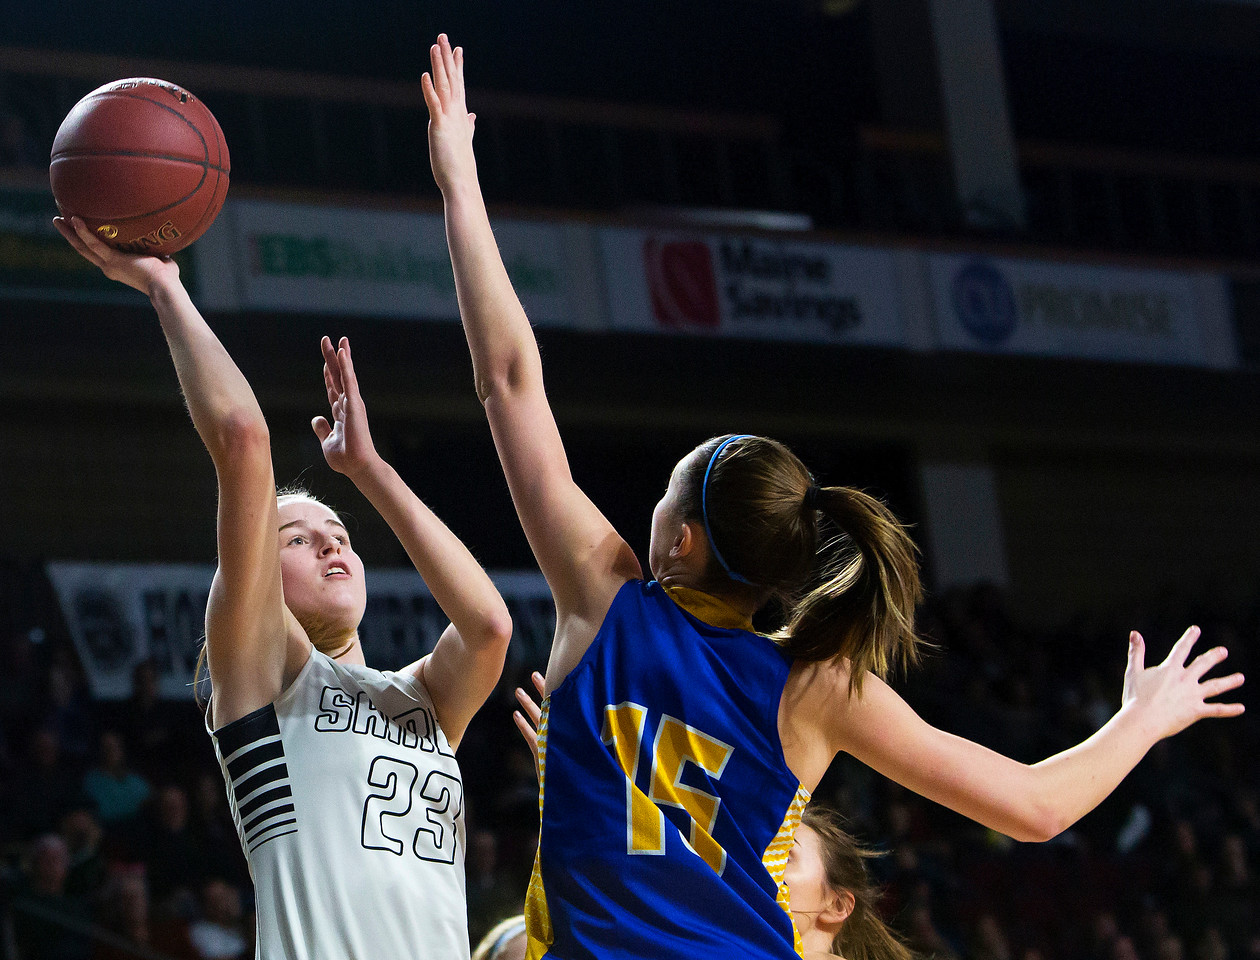 BANGOR, Maine -- 02/22/2017 -- Houlton's Kolleen Bouchard (left) puts up a shot past Hermon's Emi Higgins during their Class B girls basketball semifinal game at the Cross Insurance Center in Bangor Wednesday. Ashley L. Conti | BDN